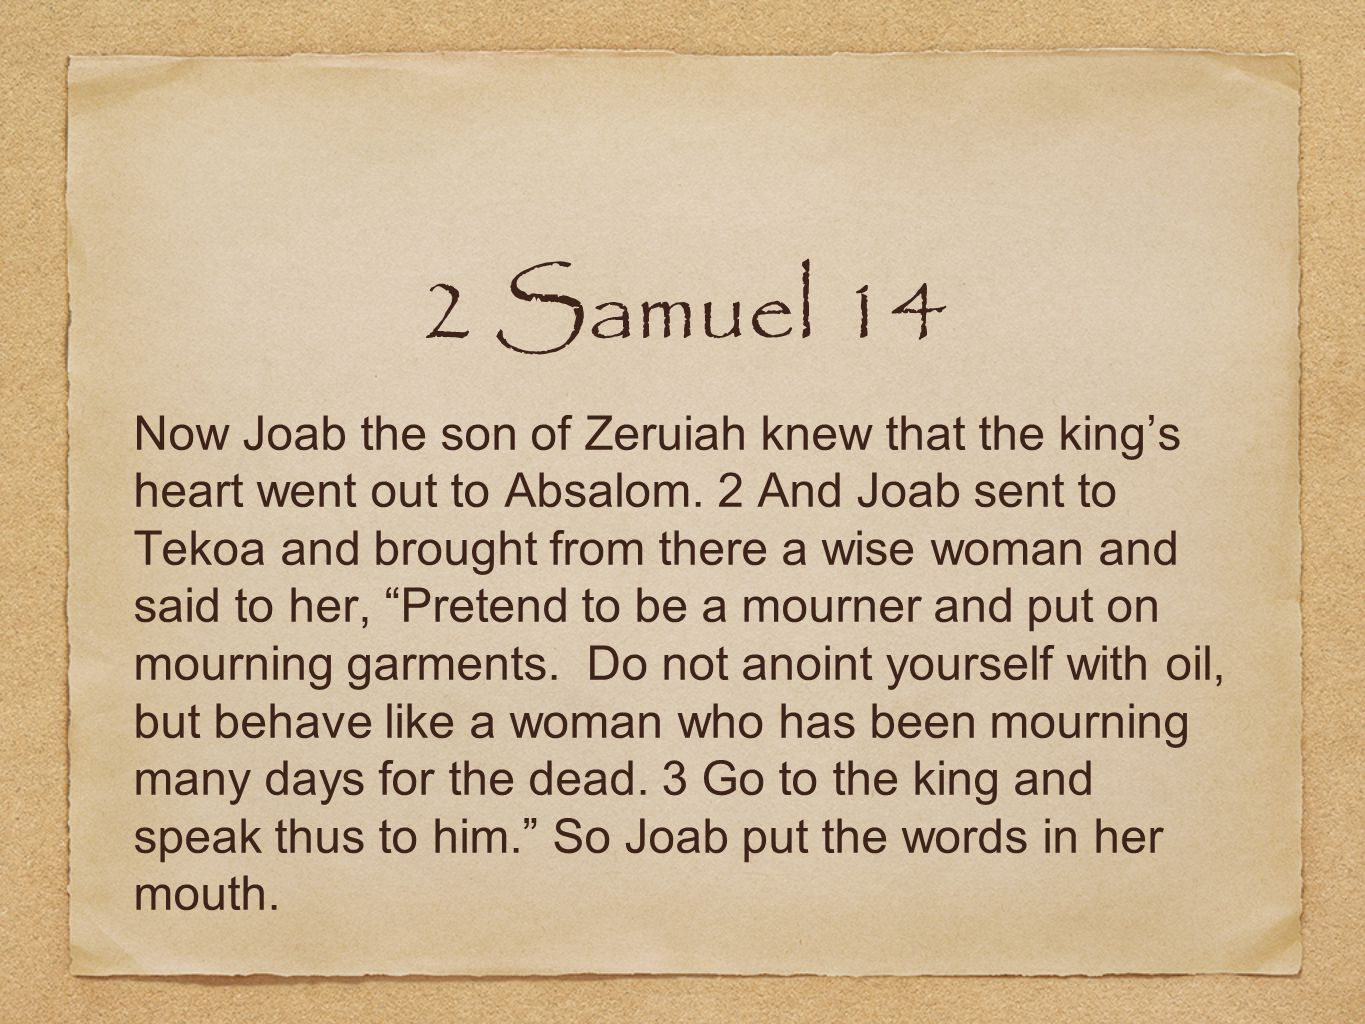 2 Samuel 14 Now Joab the son of Zeruiah knew that the king's heart went out to Absalom.